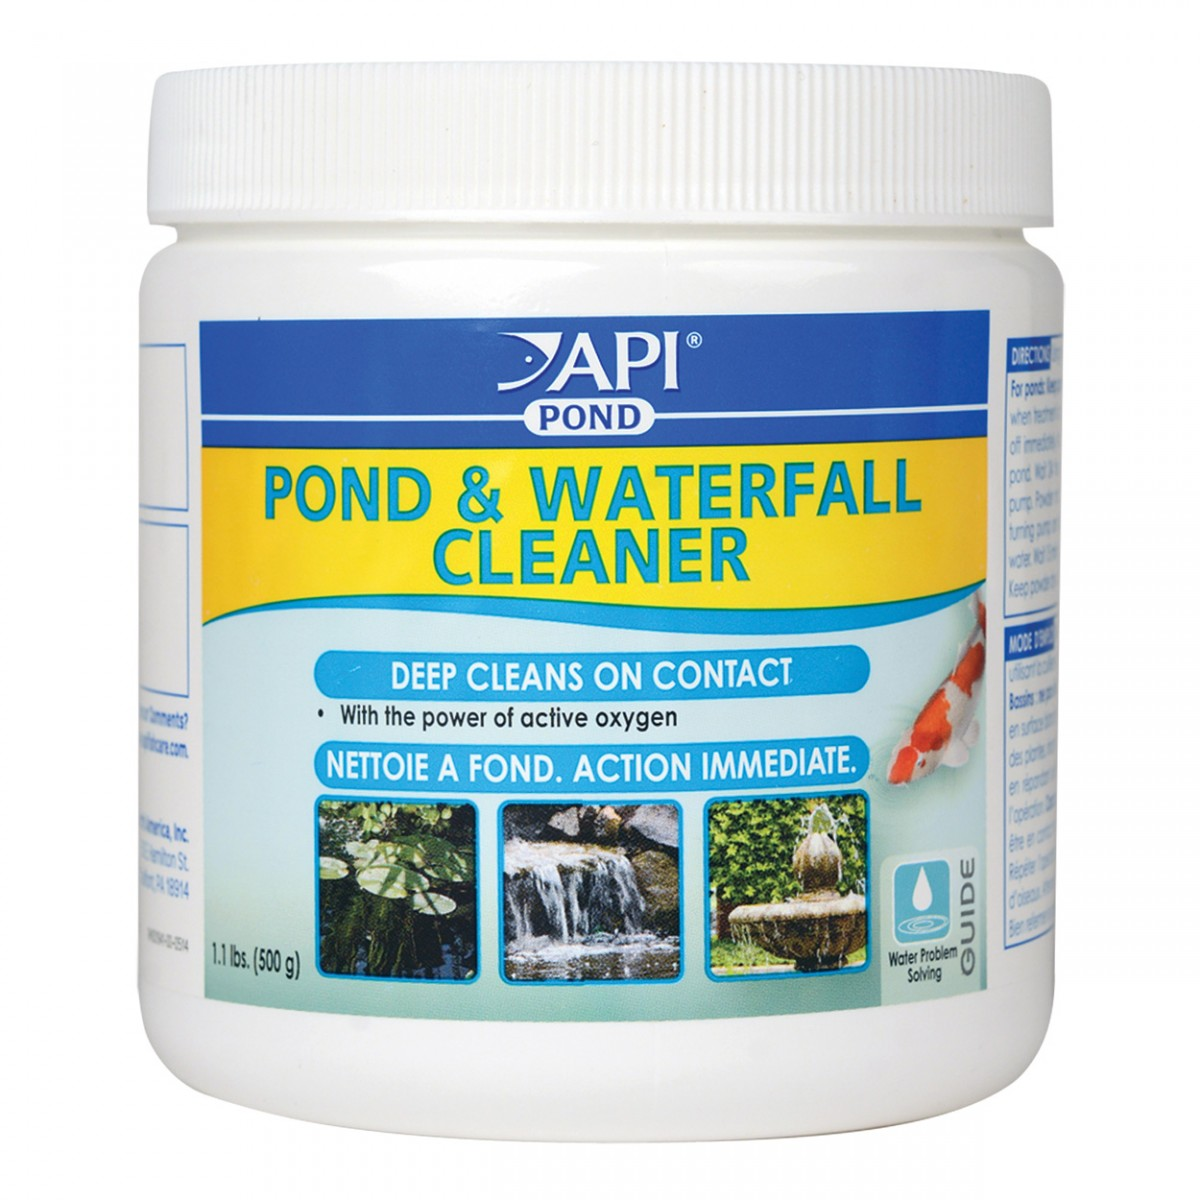 Pondcare pond waterfall cleaners for Pond cleaner